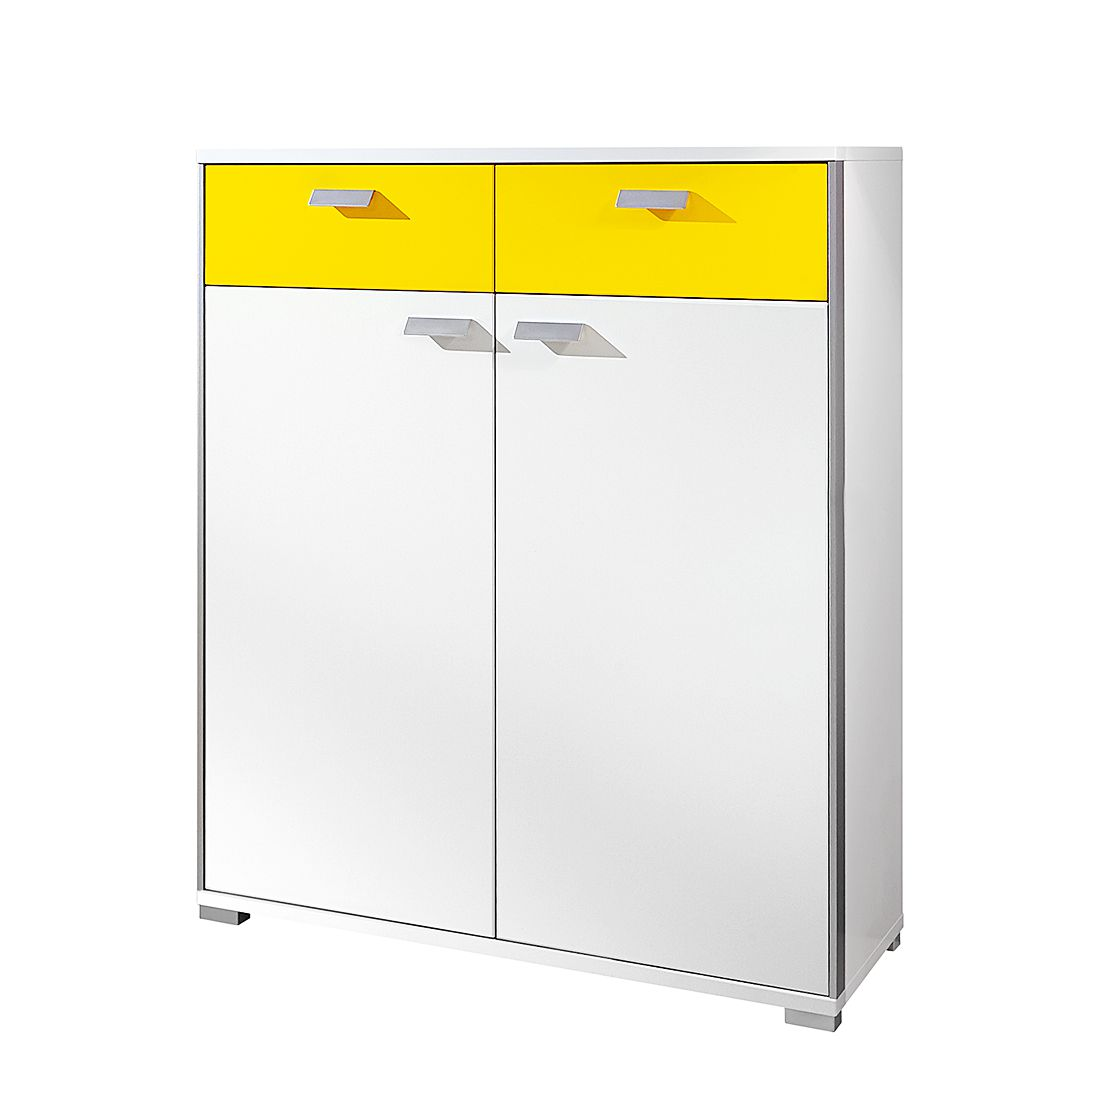 Commode Bolton II - Blanc / Jaune soleil, Voss